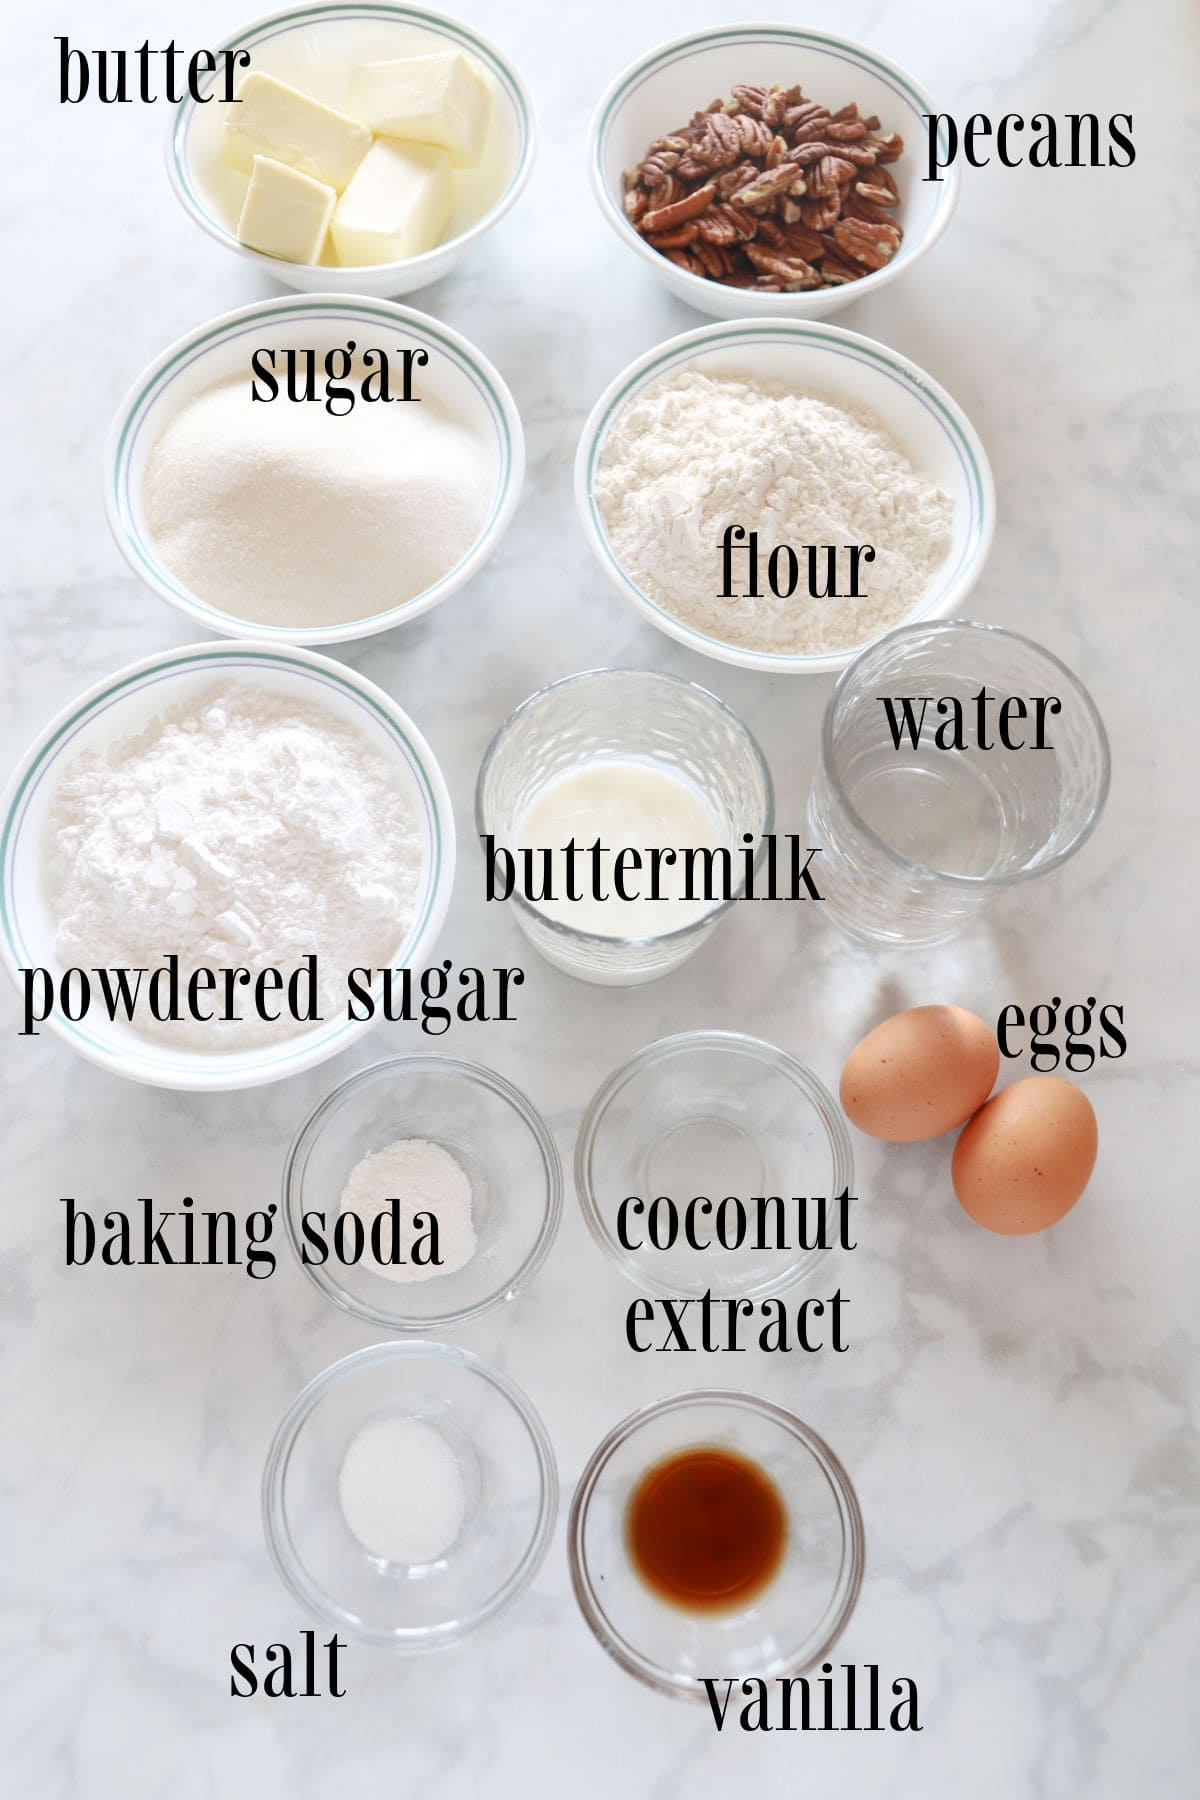 Labeled ingredients for white Texas sheet cake.